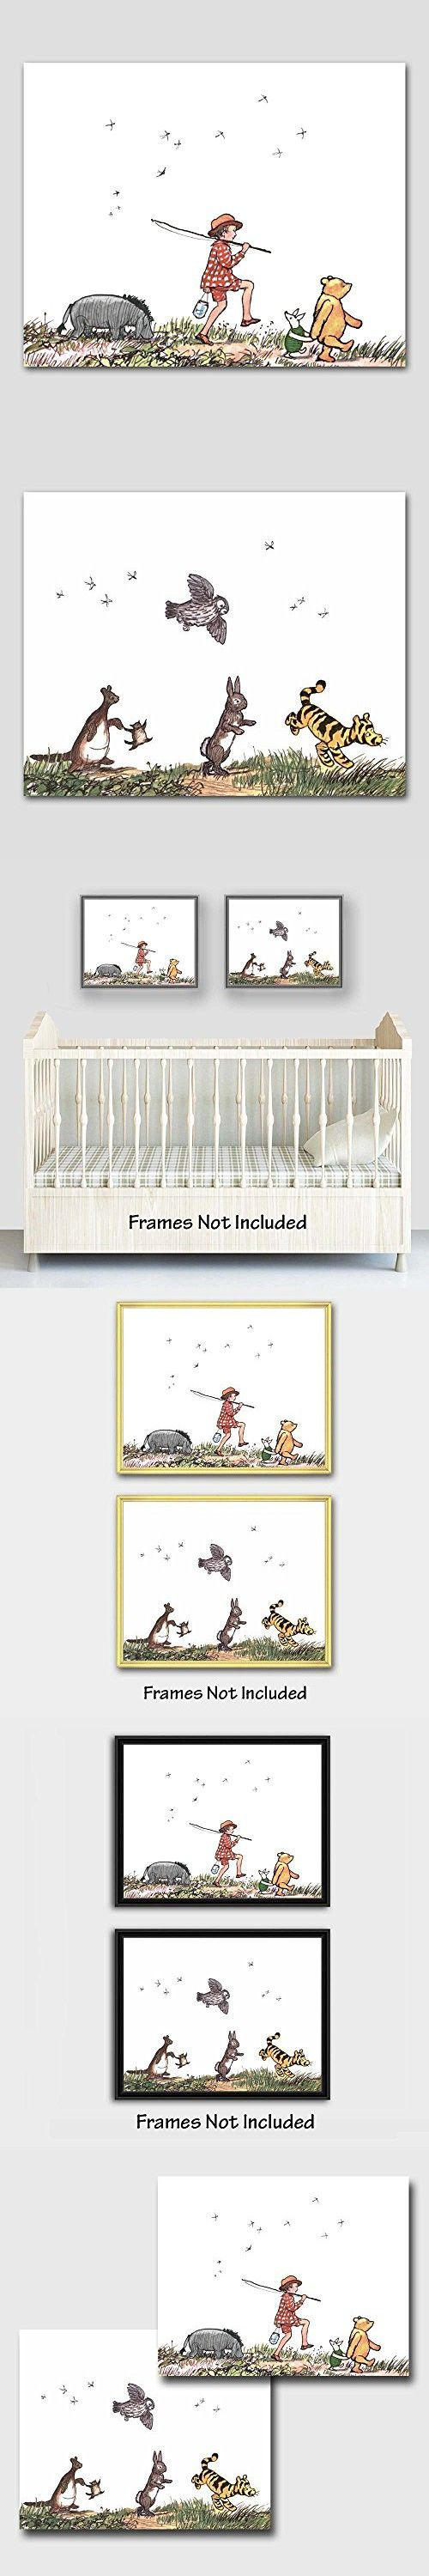 "(Set of 2) Classic Pooh Nursery Wall Art (Winnie the Pooh Decor, Baby Room Prints) ""Animal Parade"" -- Unframed"